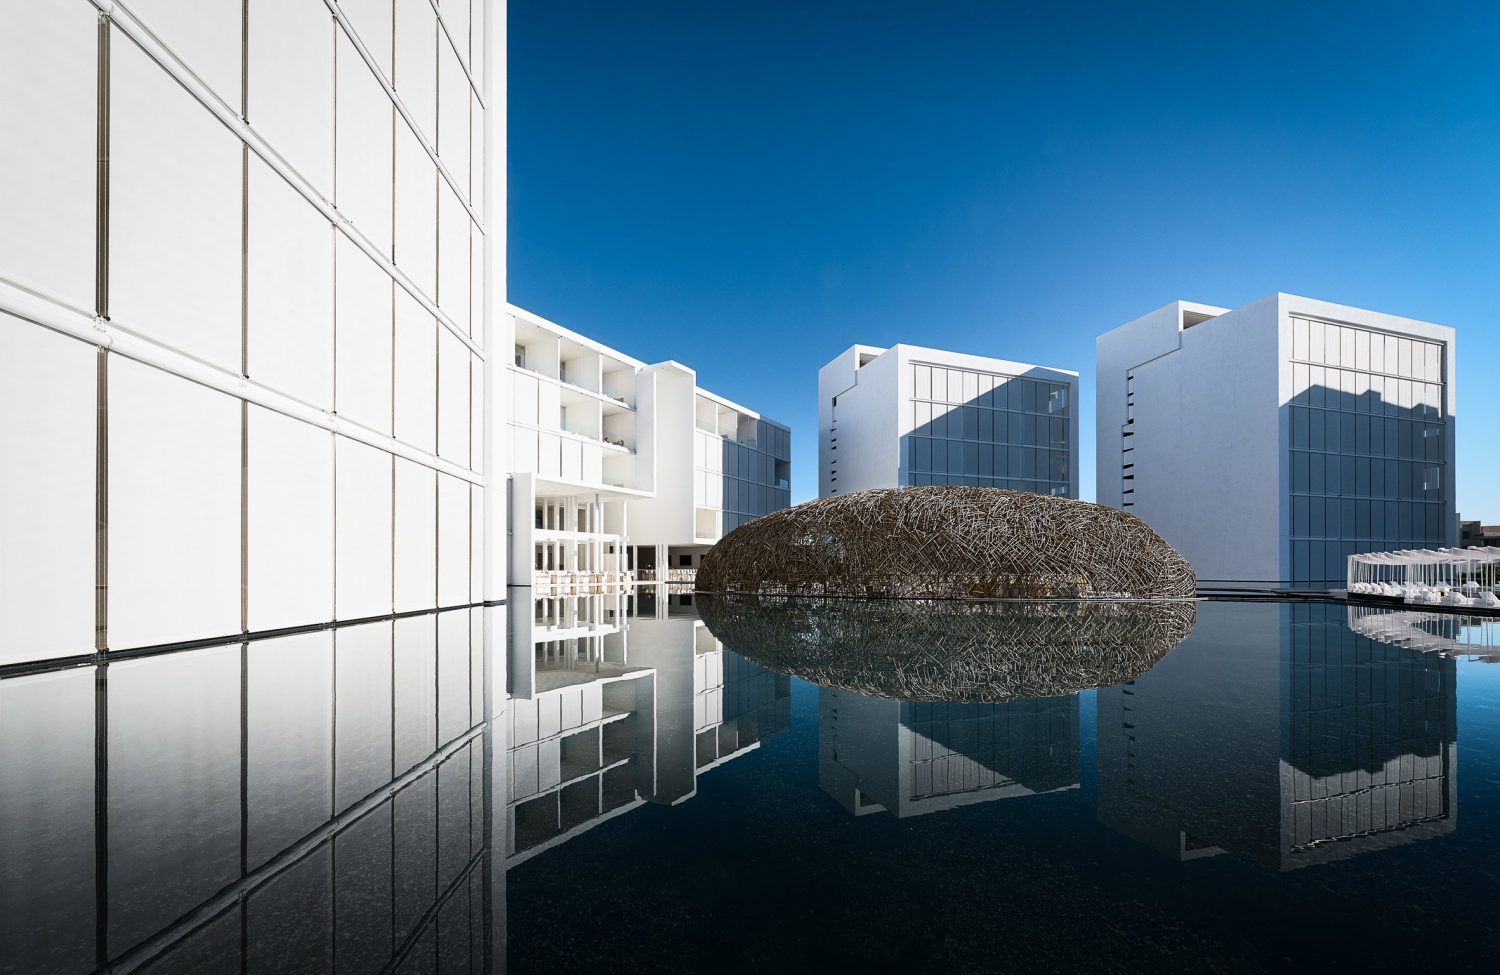 Hotel Mar Adentro by Taller Aragonés Surrounded by Expansive Pools hotel mar adentro Hotel Mar Adentro by Taller Aragonés Surrounded by Expansive Pools Hotel Mar Adentro by Taller Aragon  s Surrounded by Expansive Pools 1